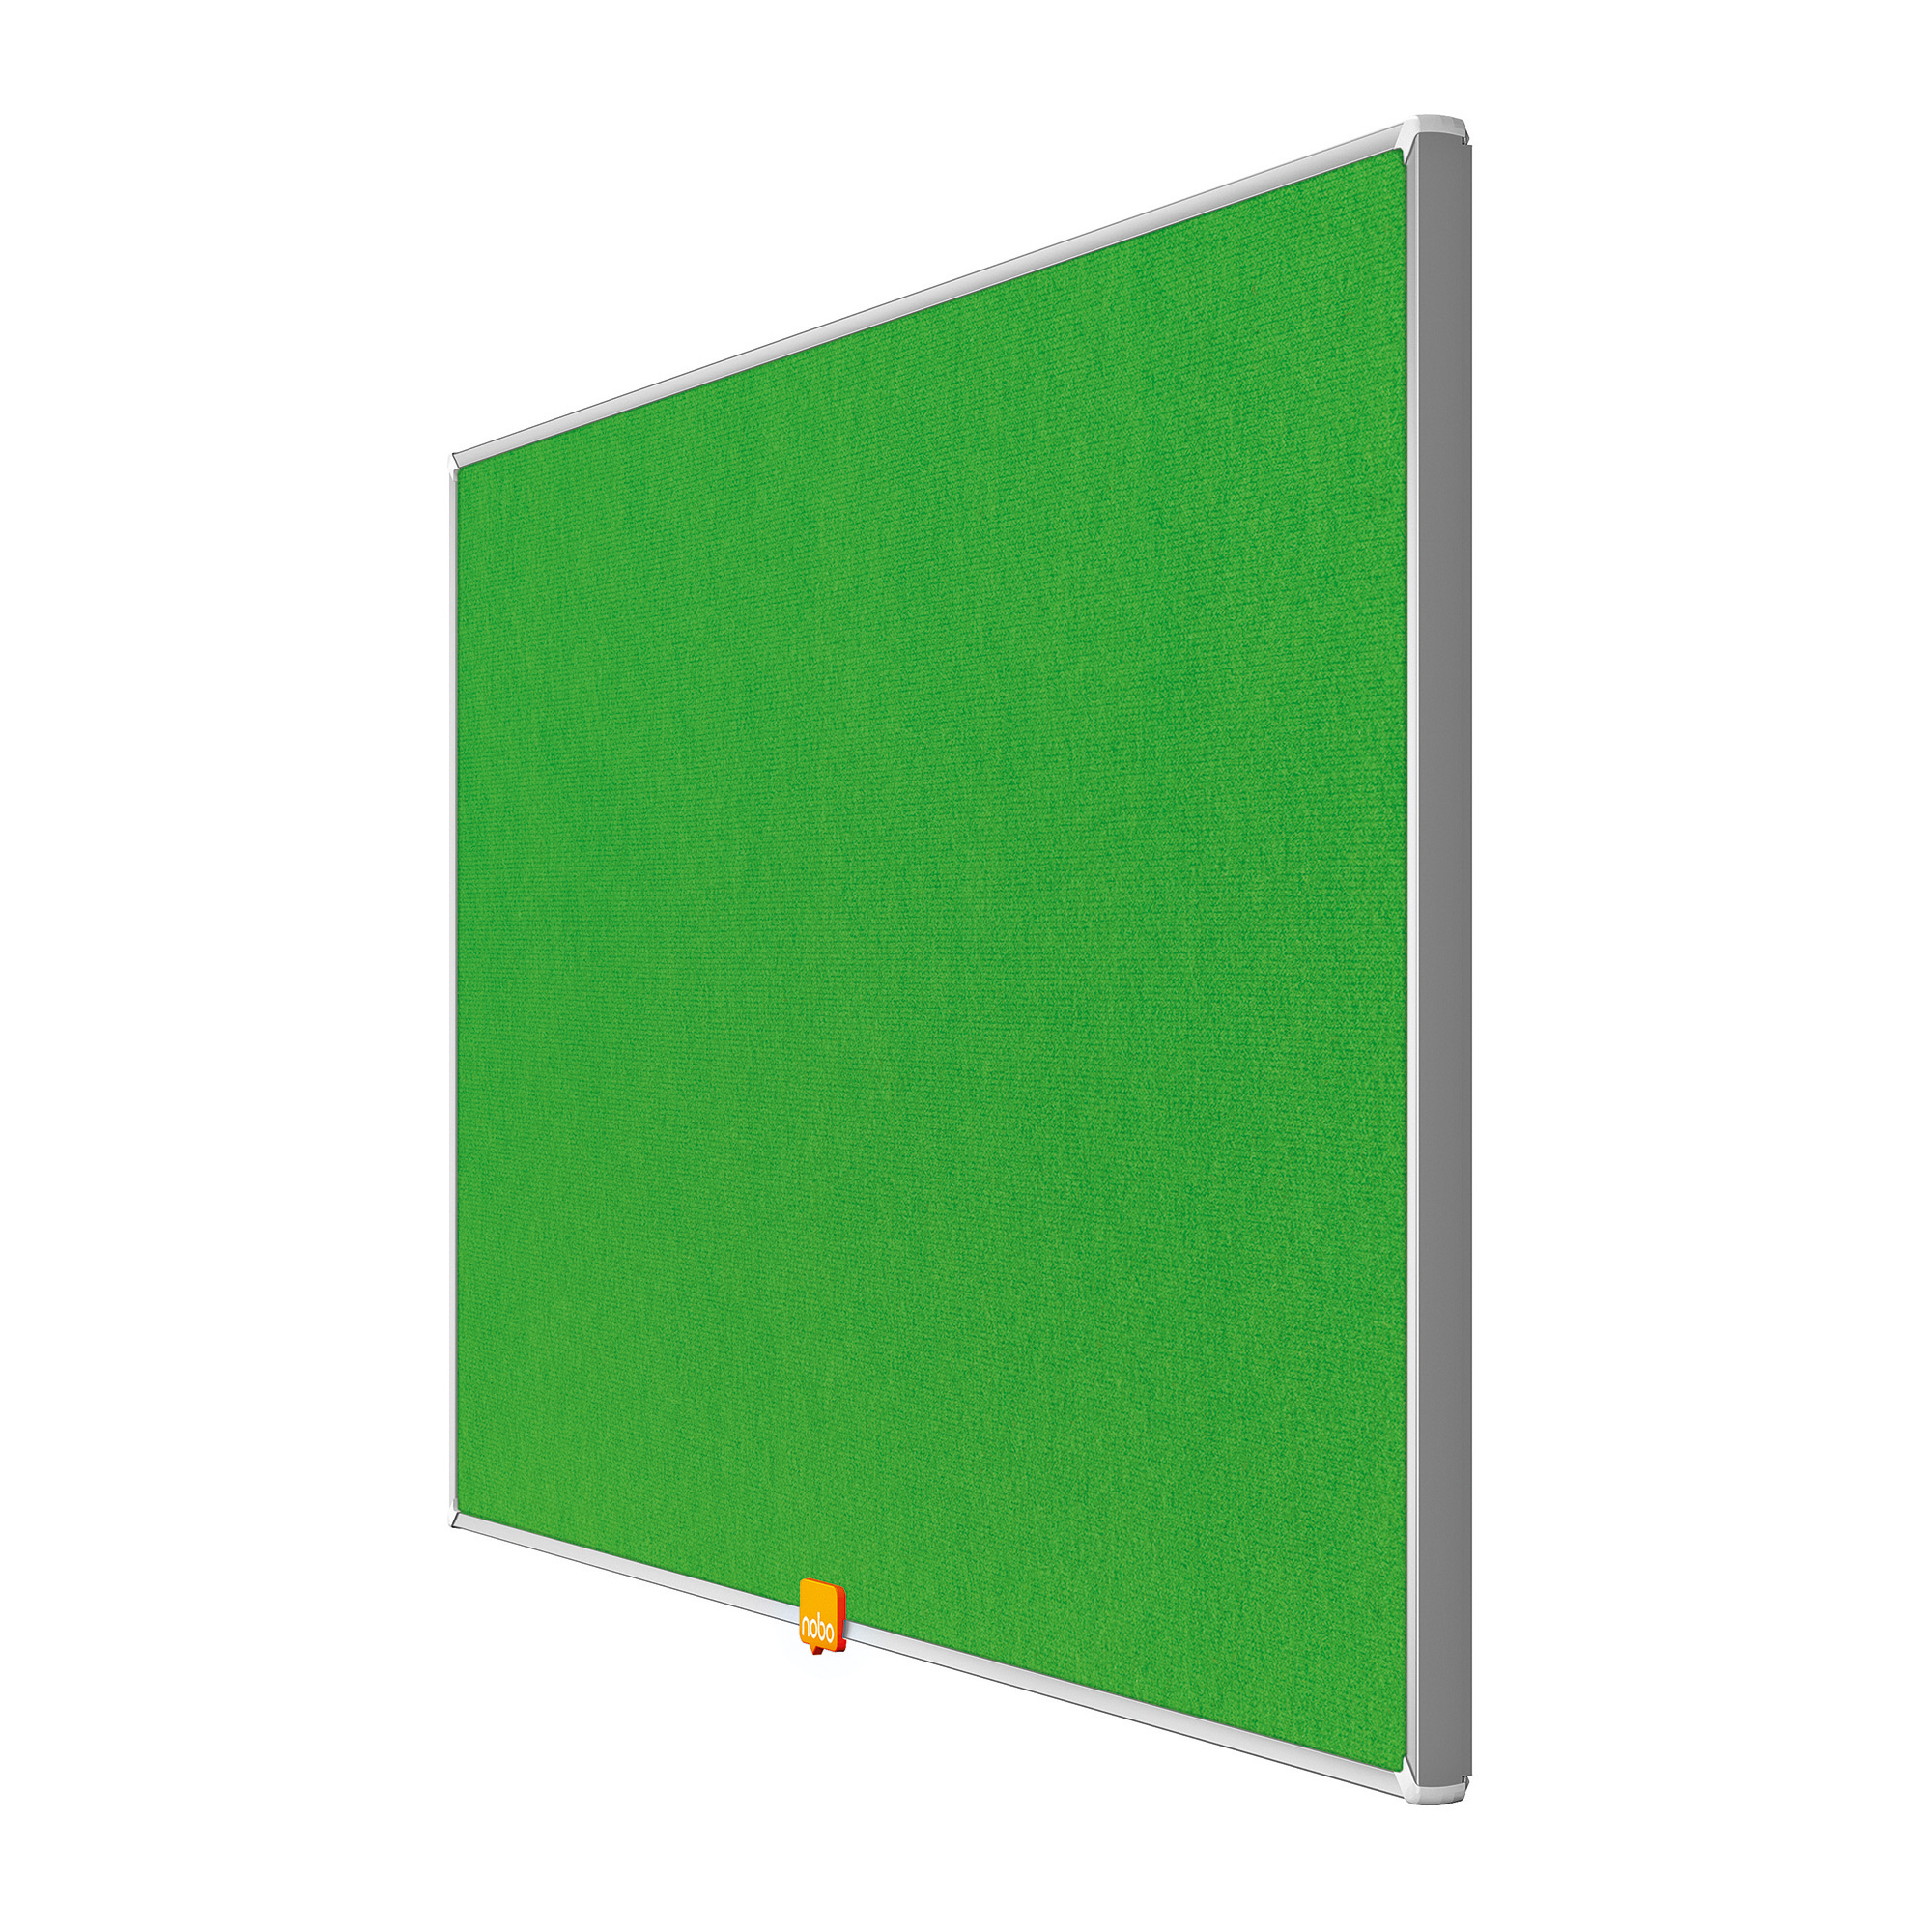 Bulletin boards or accessories Nobo 32 inch Widescreen Felt Board 710x400mm Green Ref 1905314